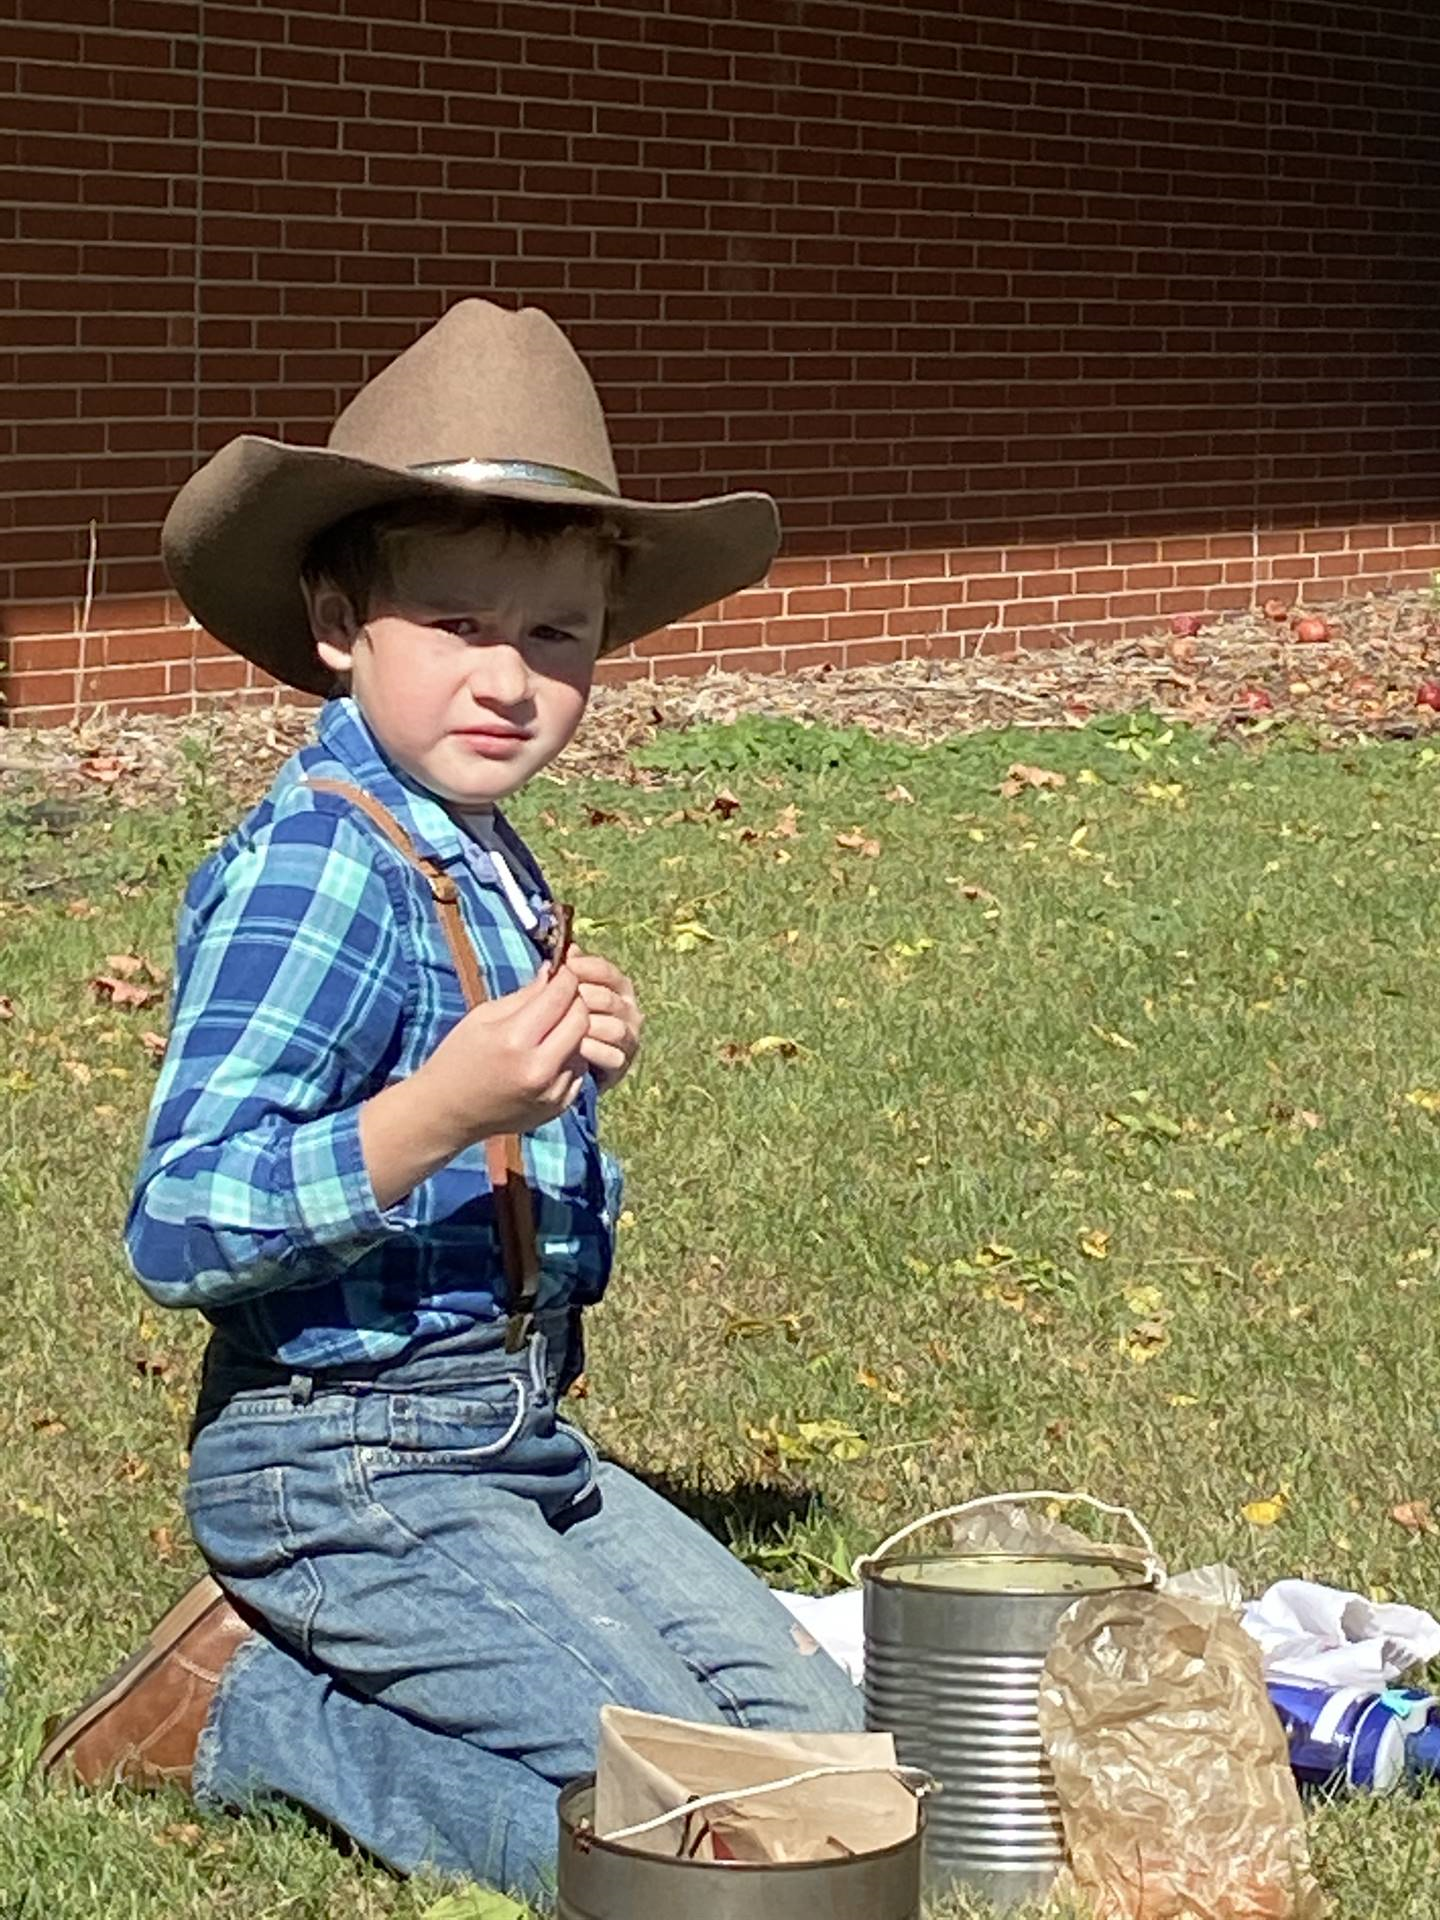 Second grade boy dressed as a pioneer outside eating lunch